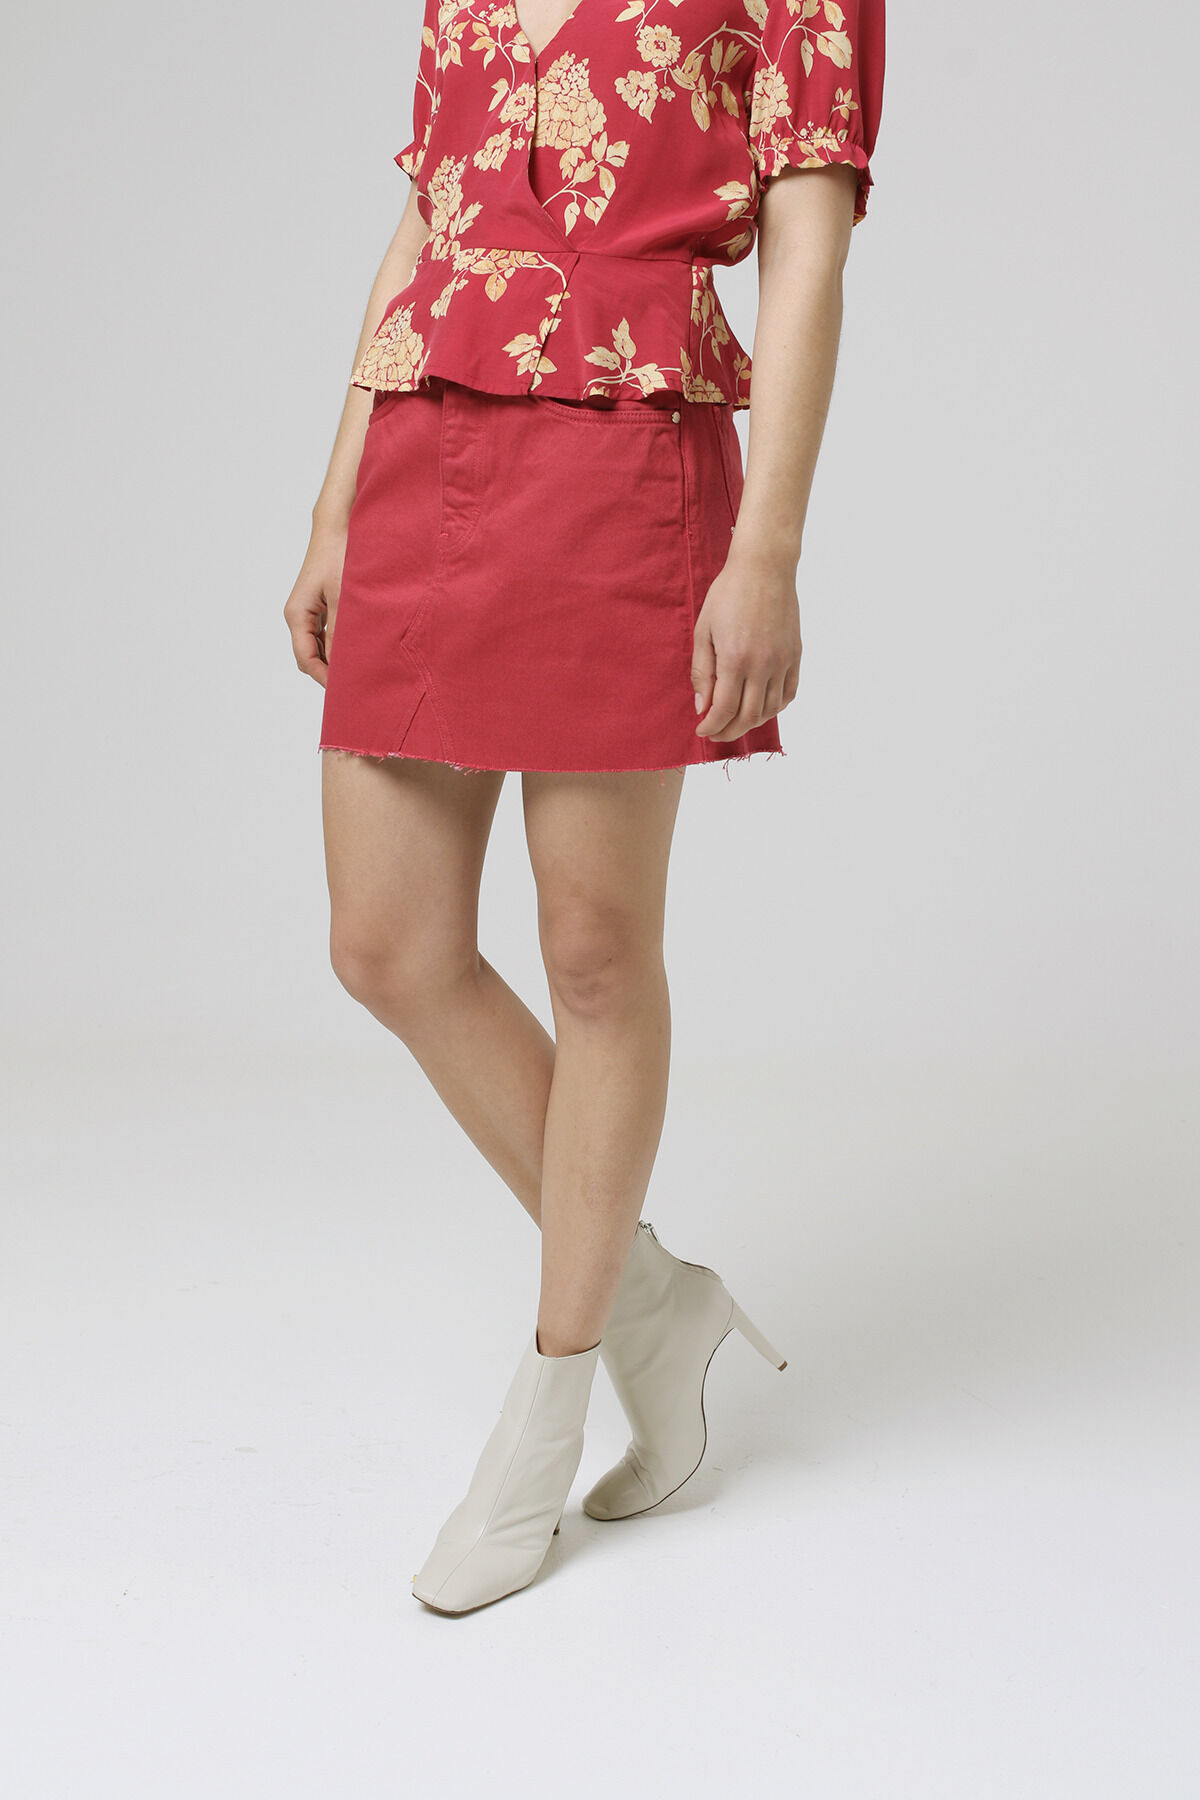 PEARL SKIRT Pure cotton - Mini